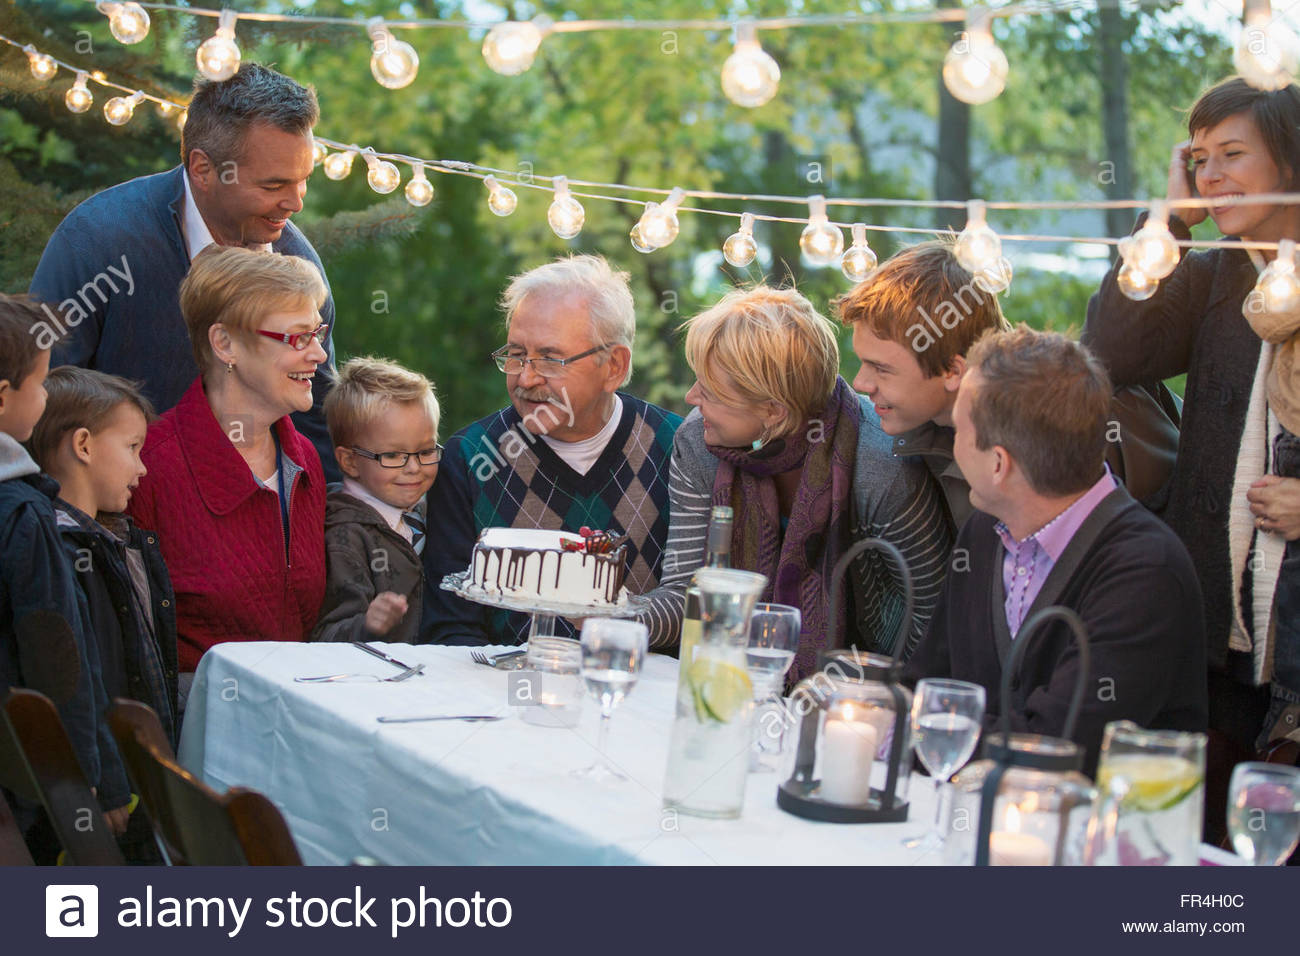 Family gathered around beautiful cake at outdoor dinner. - Stock Image